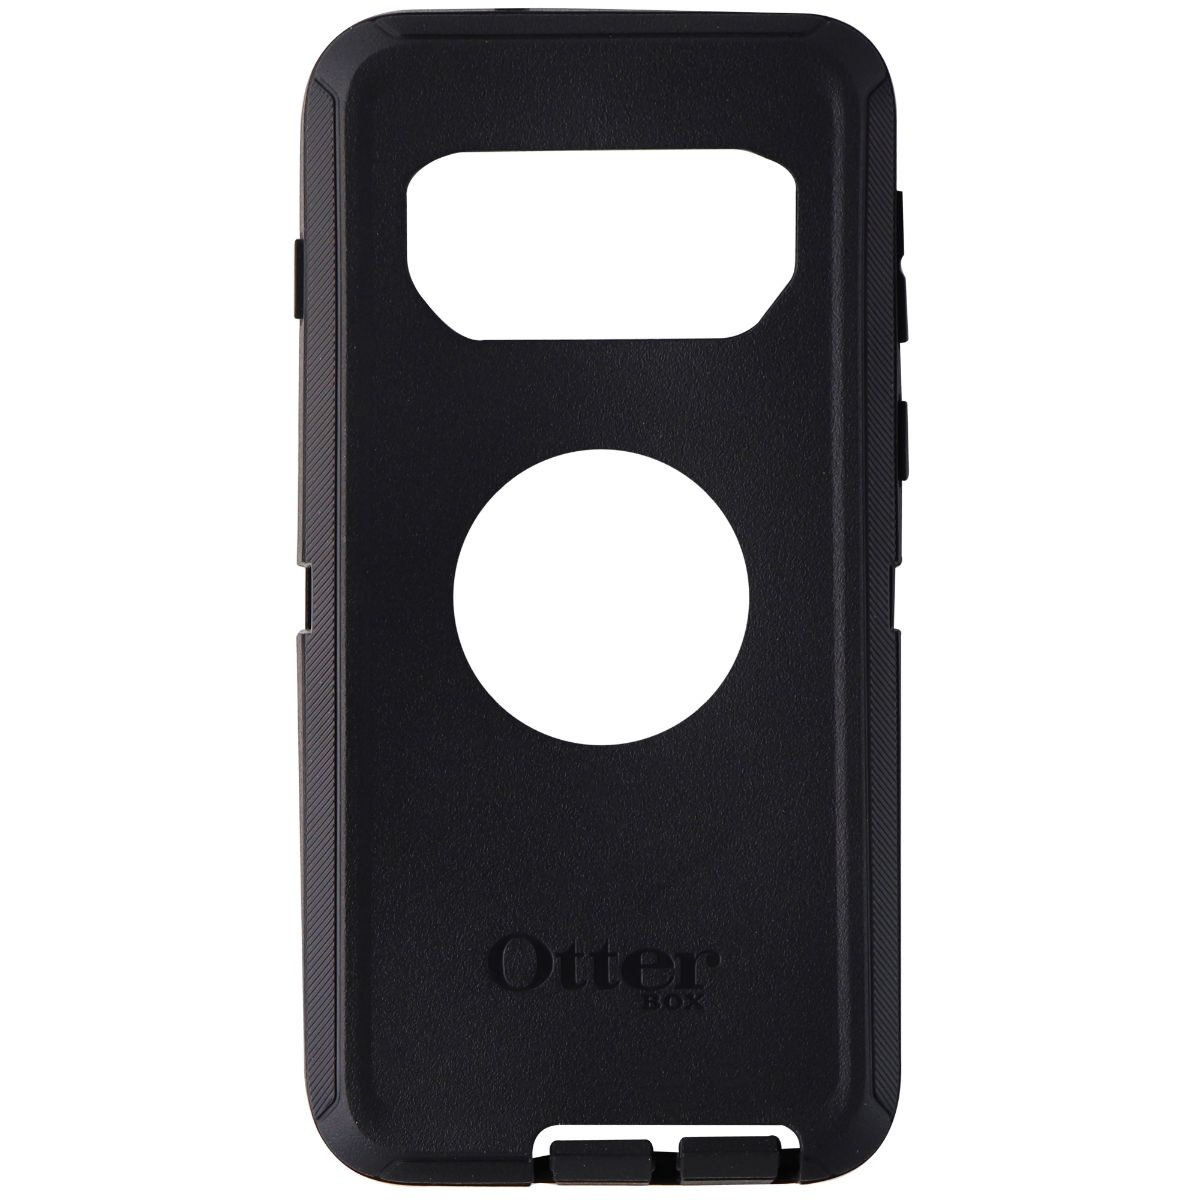 Replacement Outer Shell for Galaxy S10 Otterbox + Pop Defender Case - Black